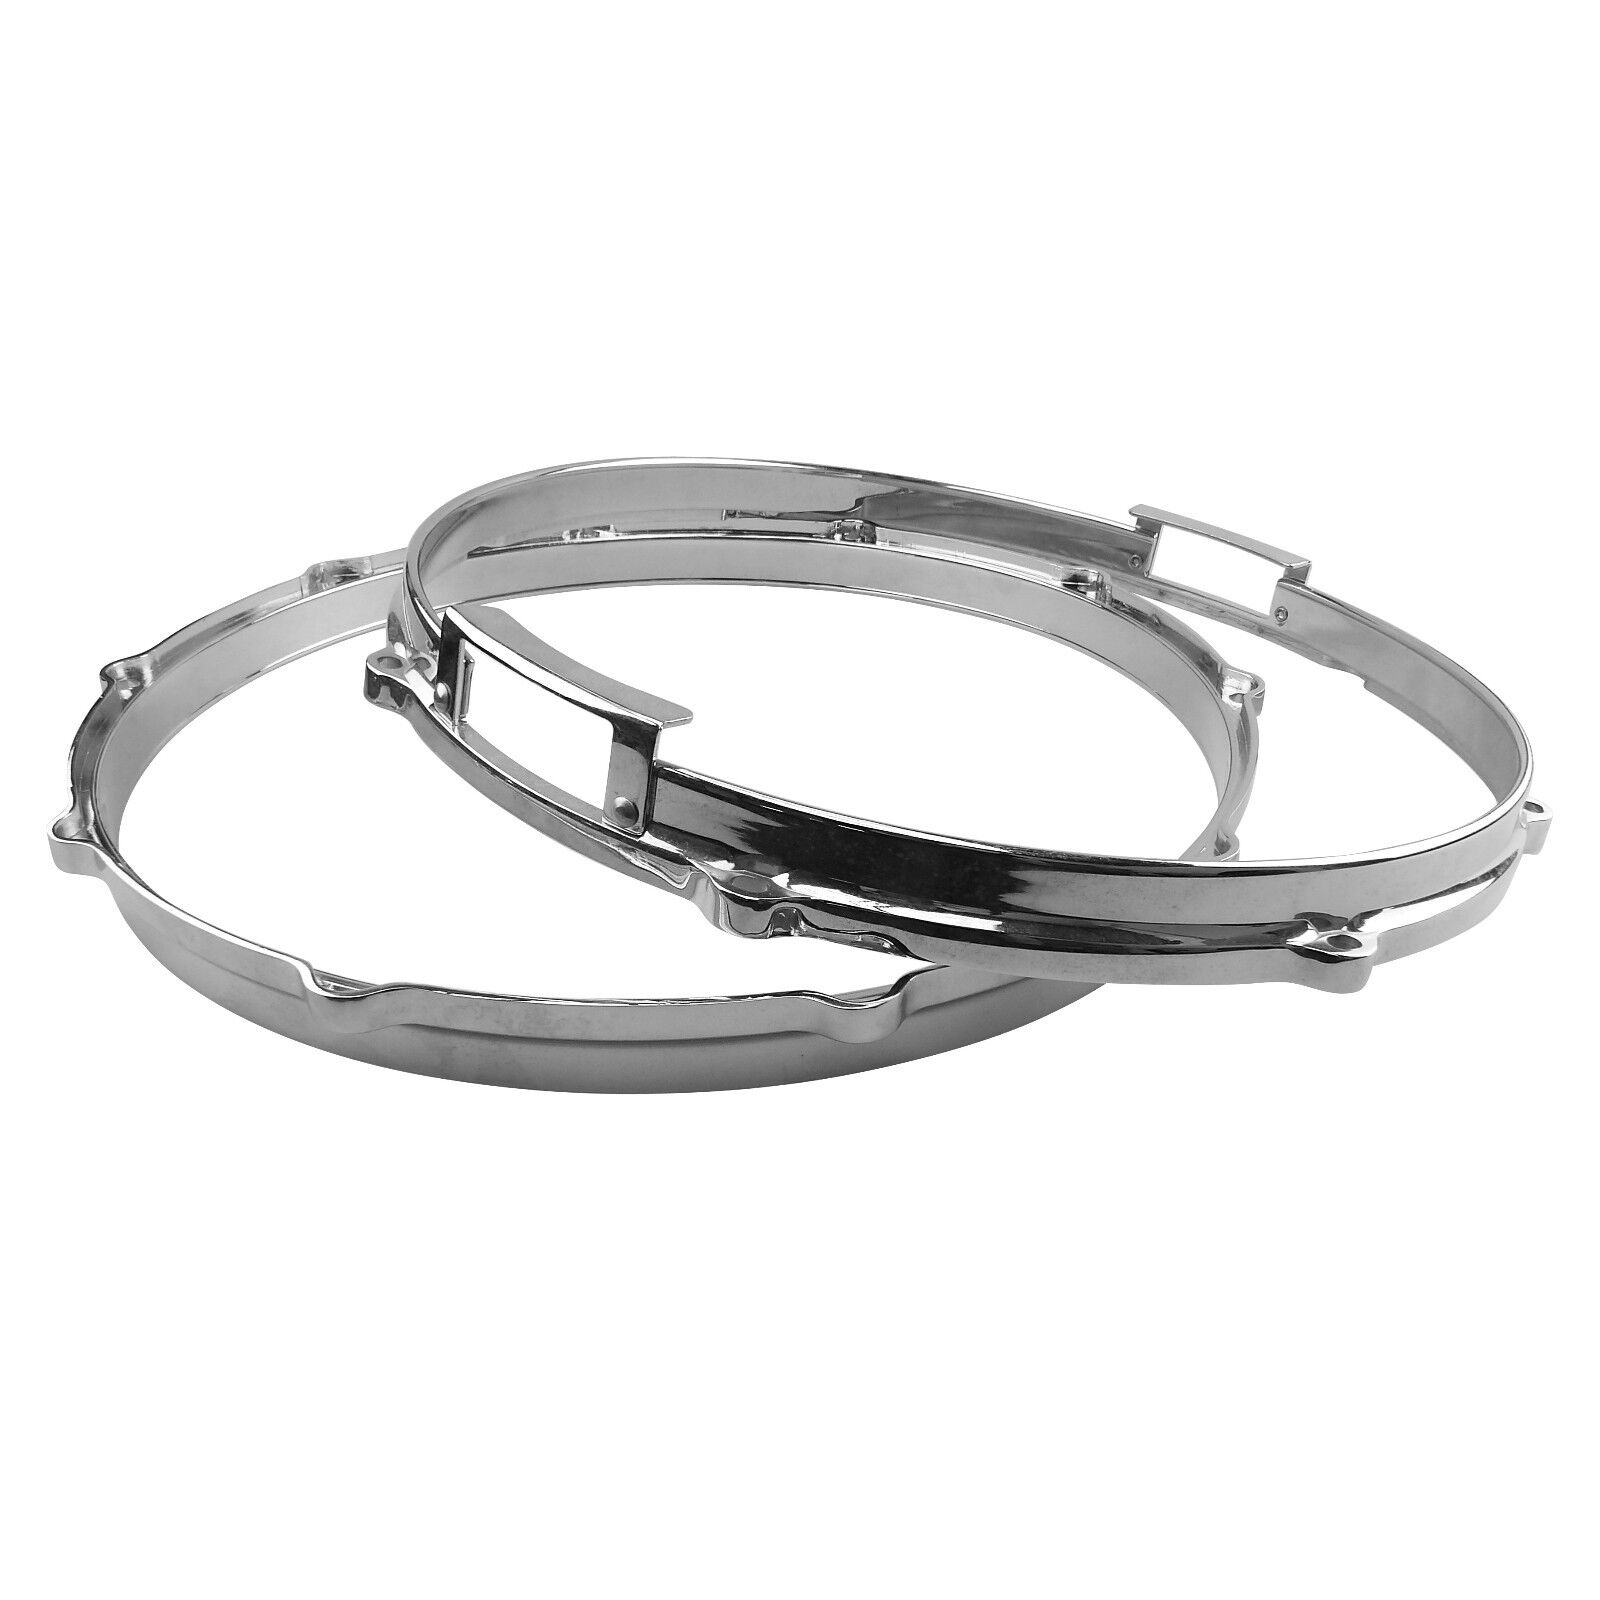 Shaw Die Cast Chrome Batter Drum Hoops